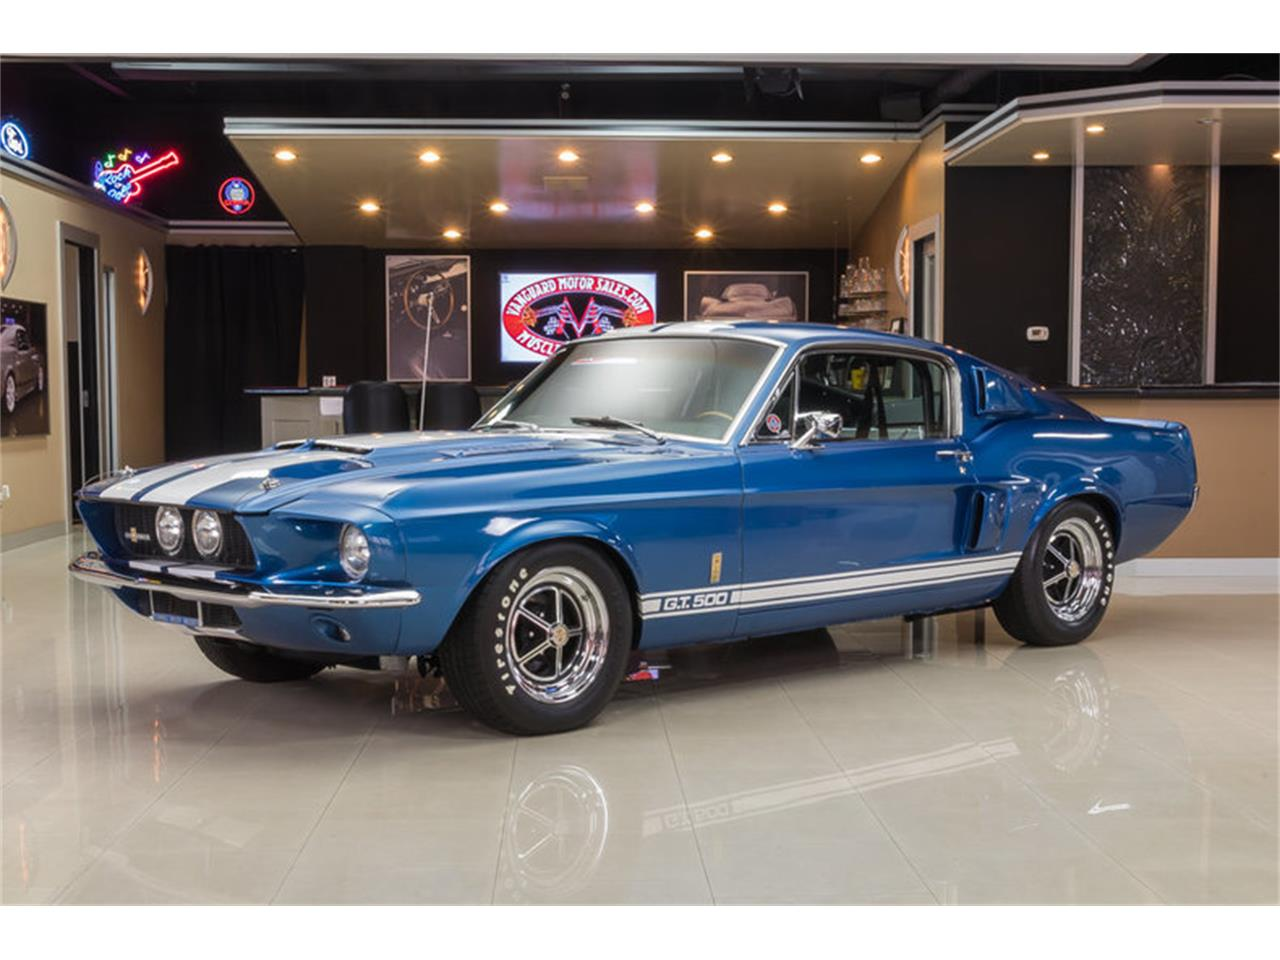 Large picture of classic 1967 mustang 109900 00 offered by vanguard motor sales n78f